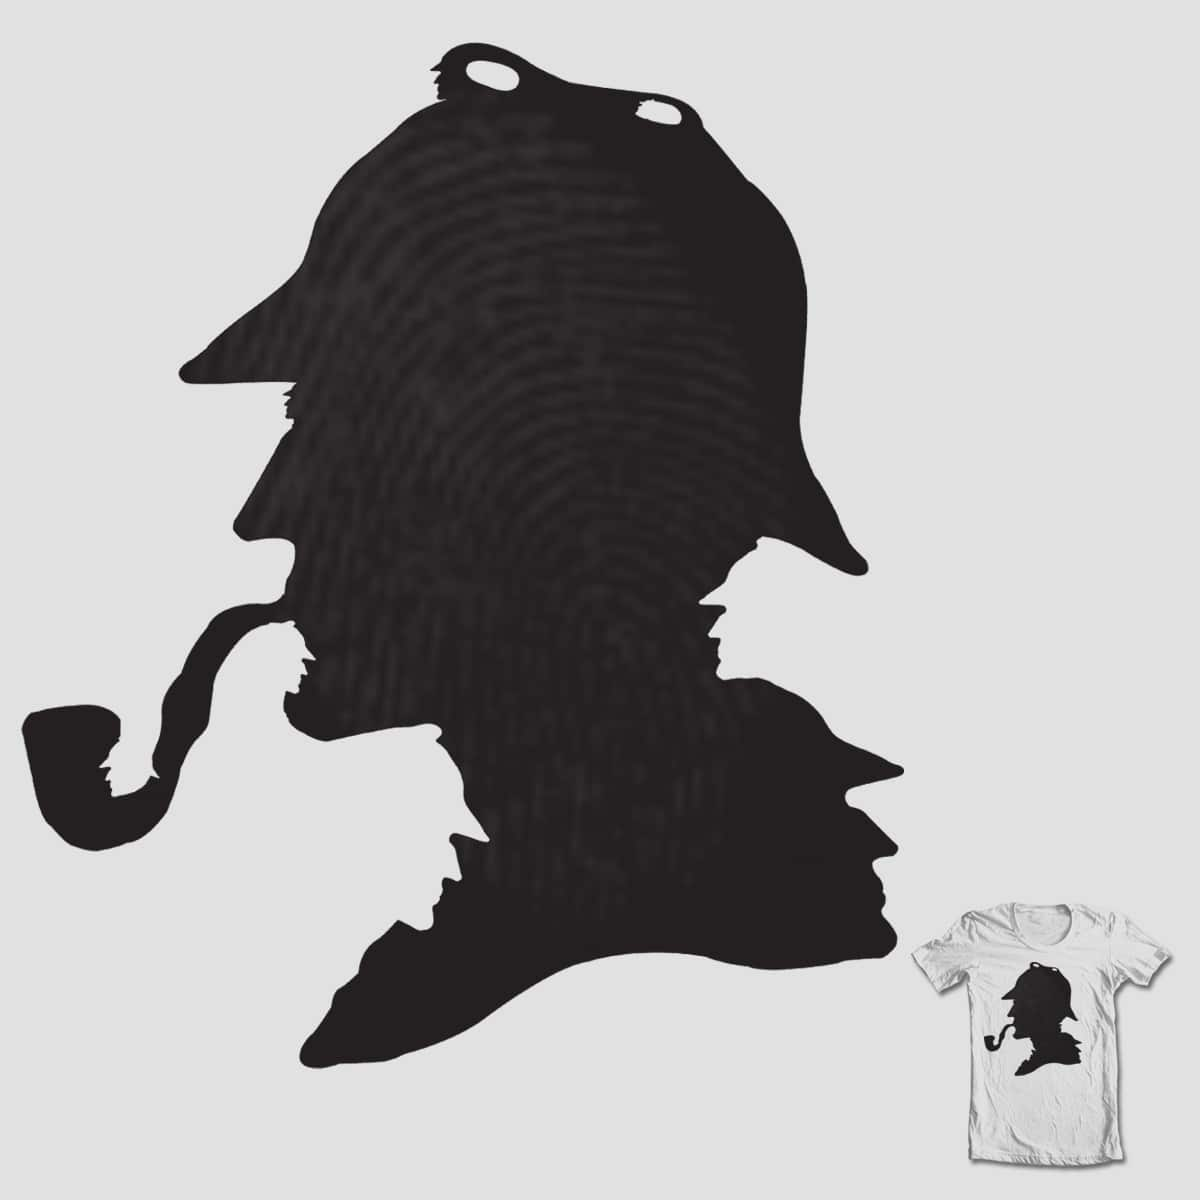 Sherlock 9 by gnob on Threadless